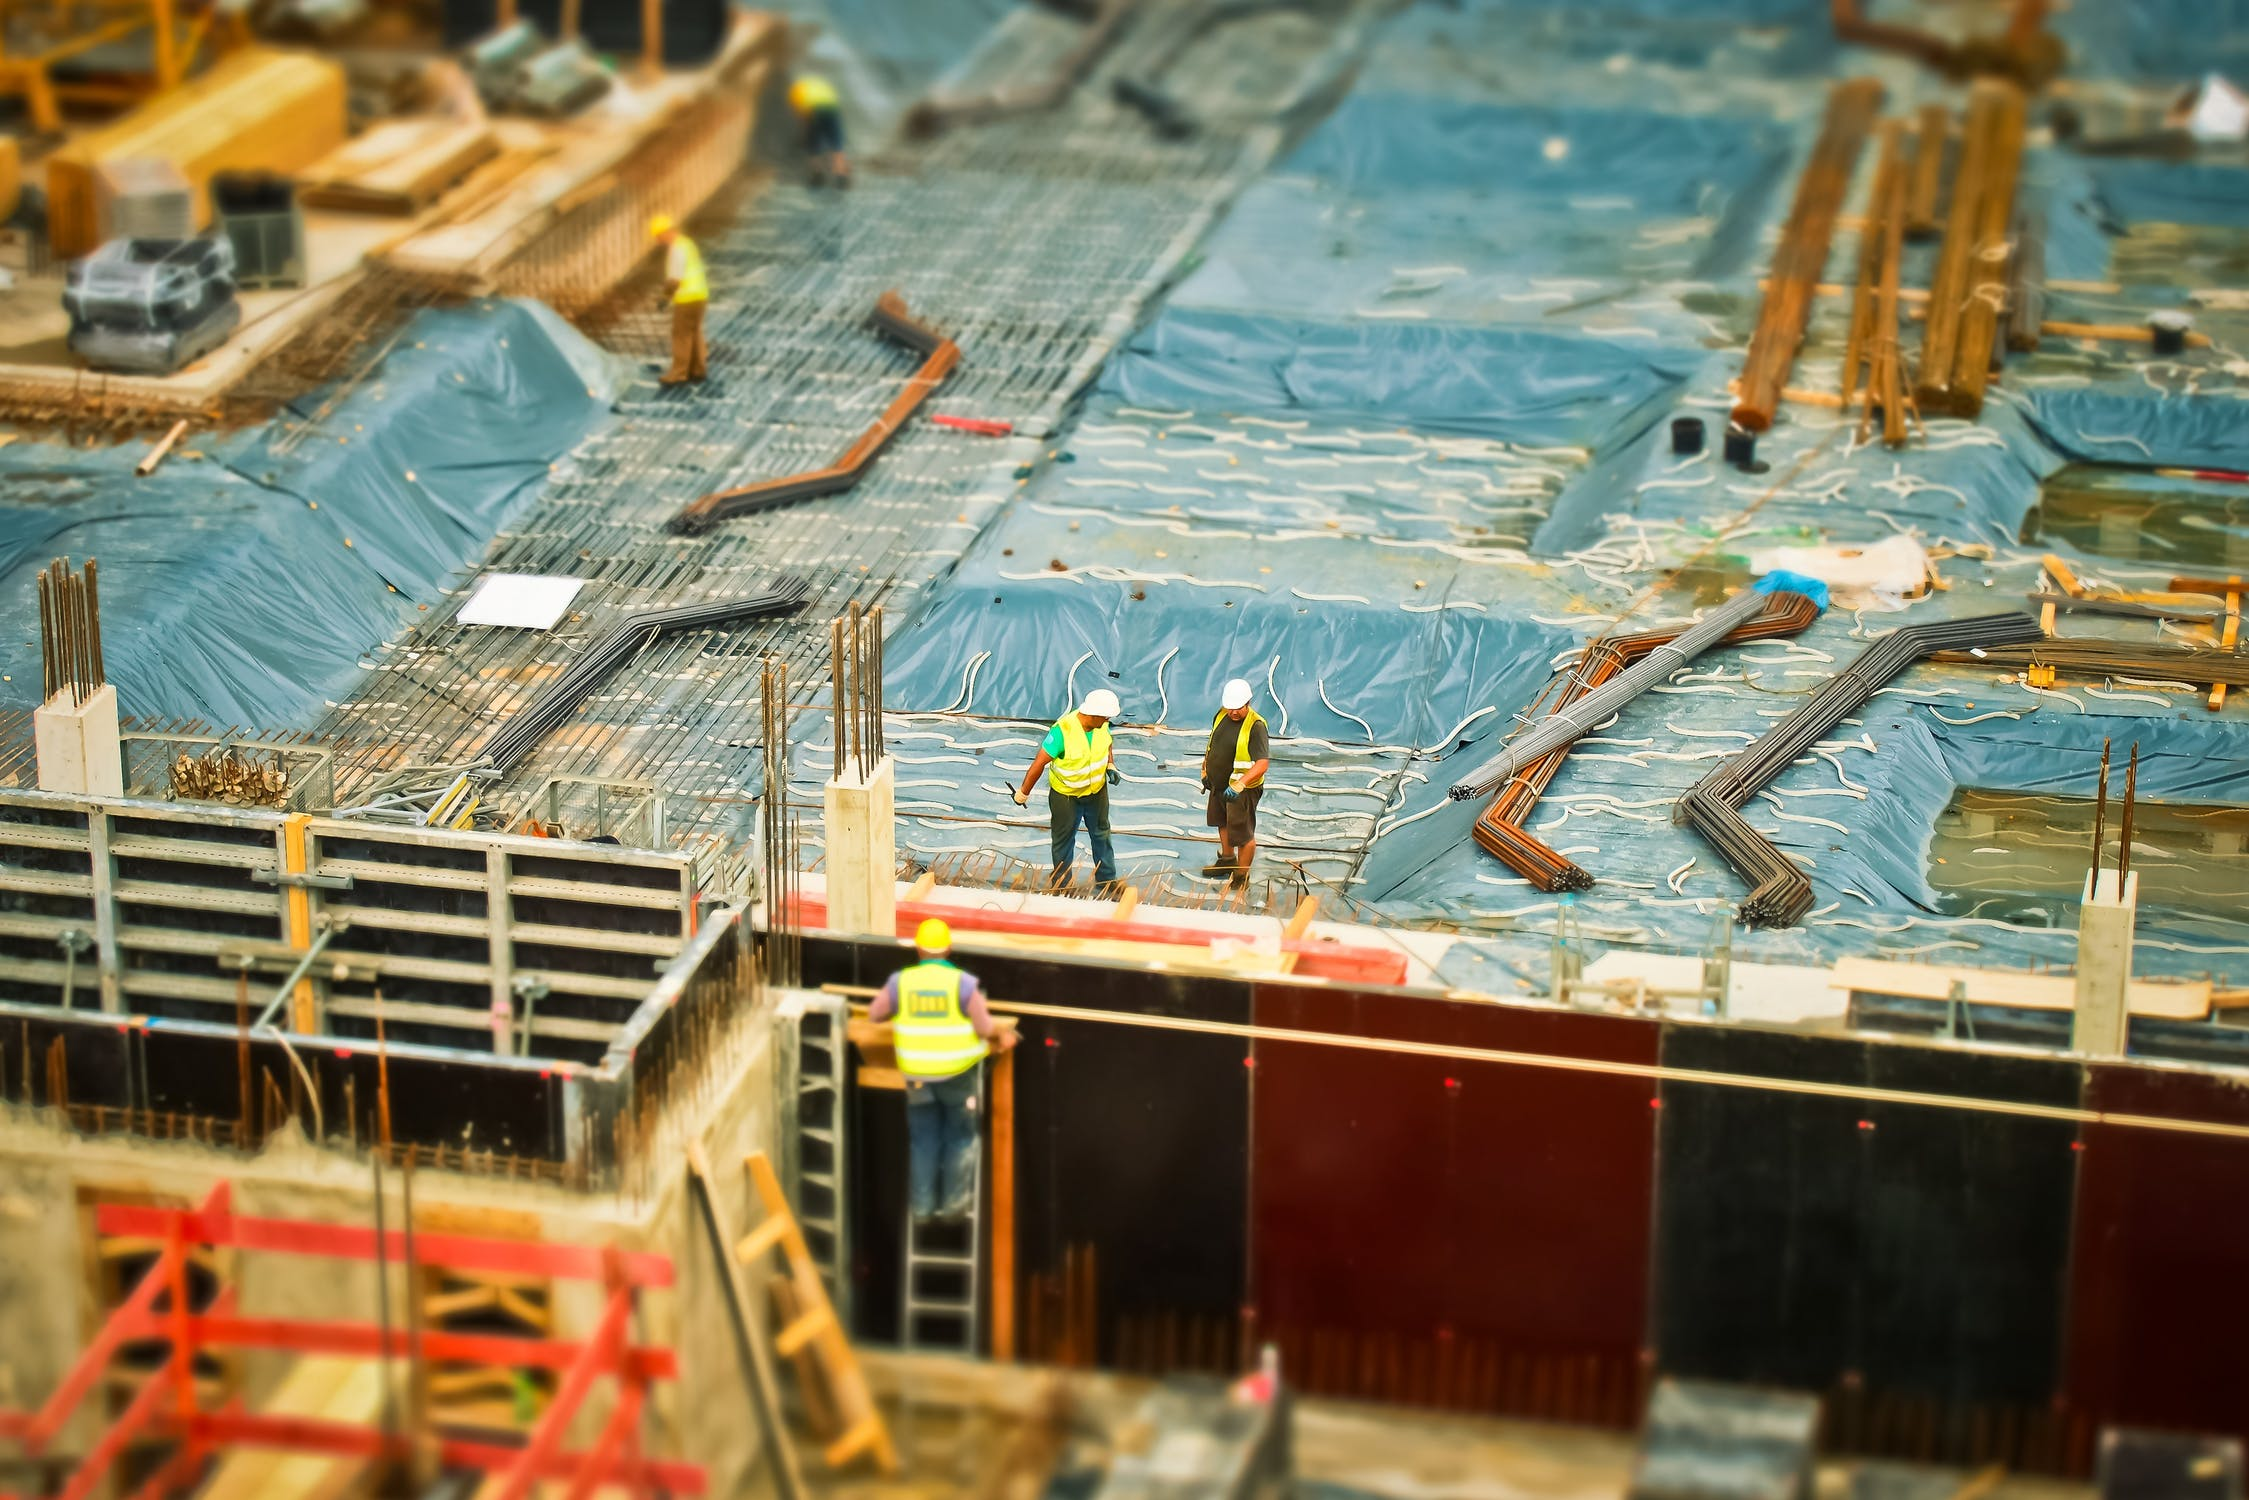 5 Important Facts about Building Inspection That You Need to Know